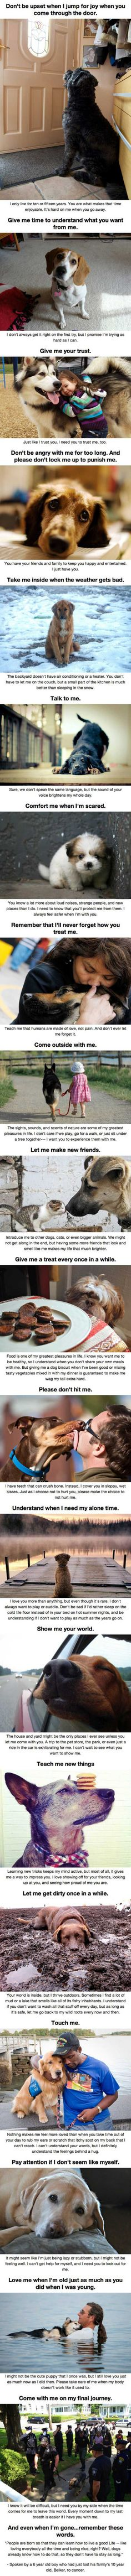 The 20 important facts dog lovers must never forget. Just cried my eyes out